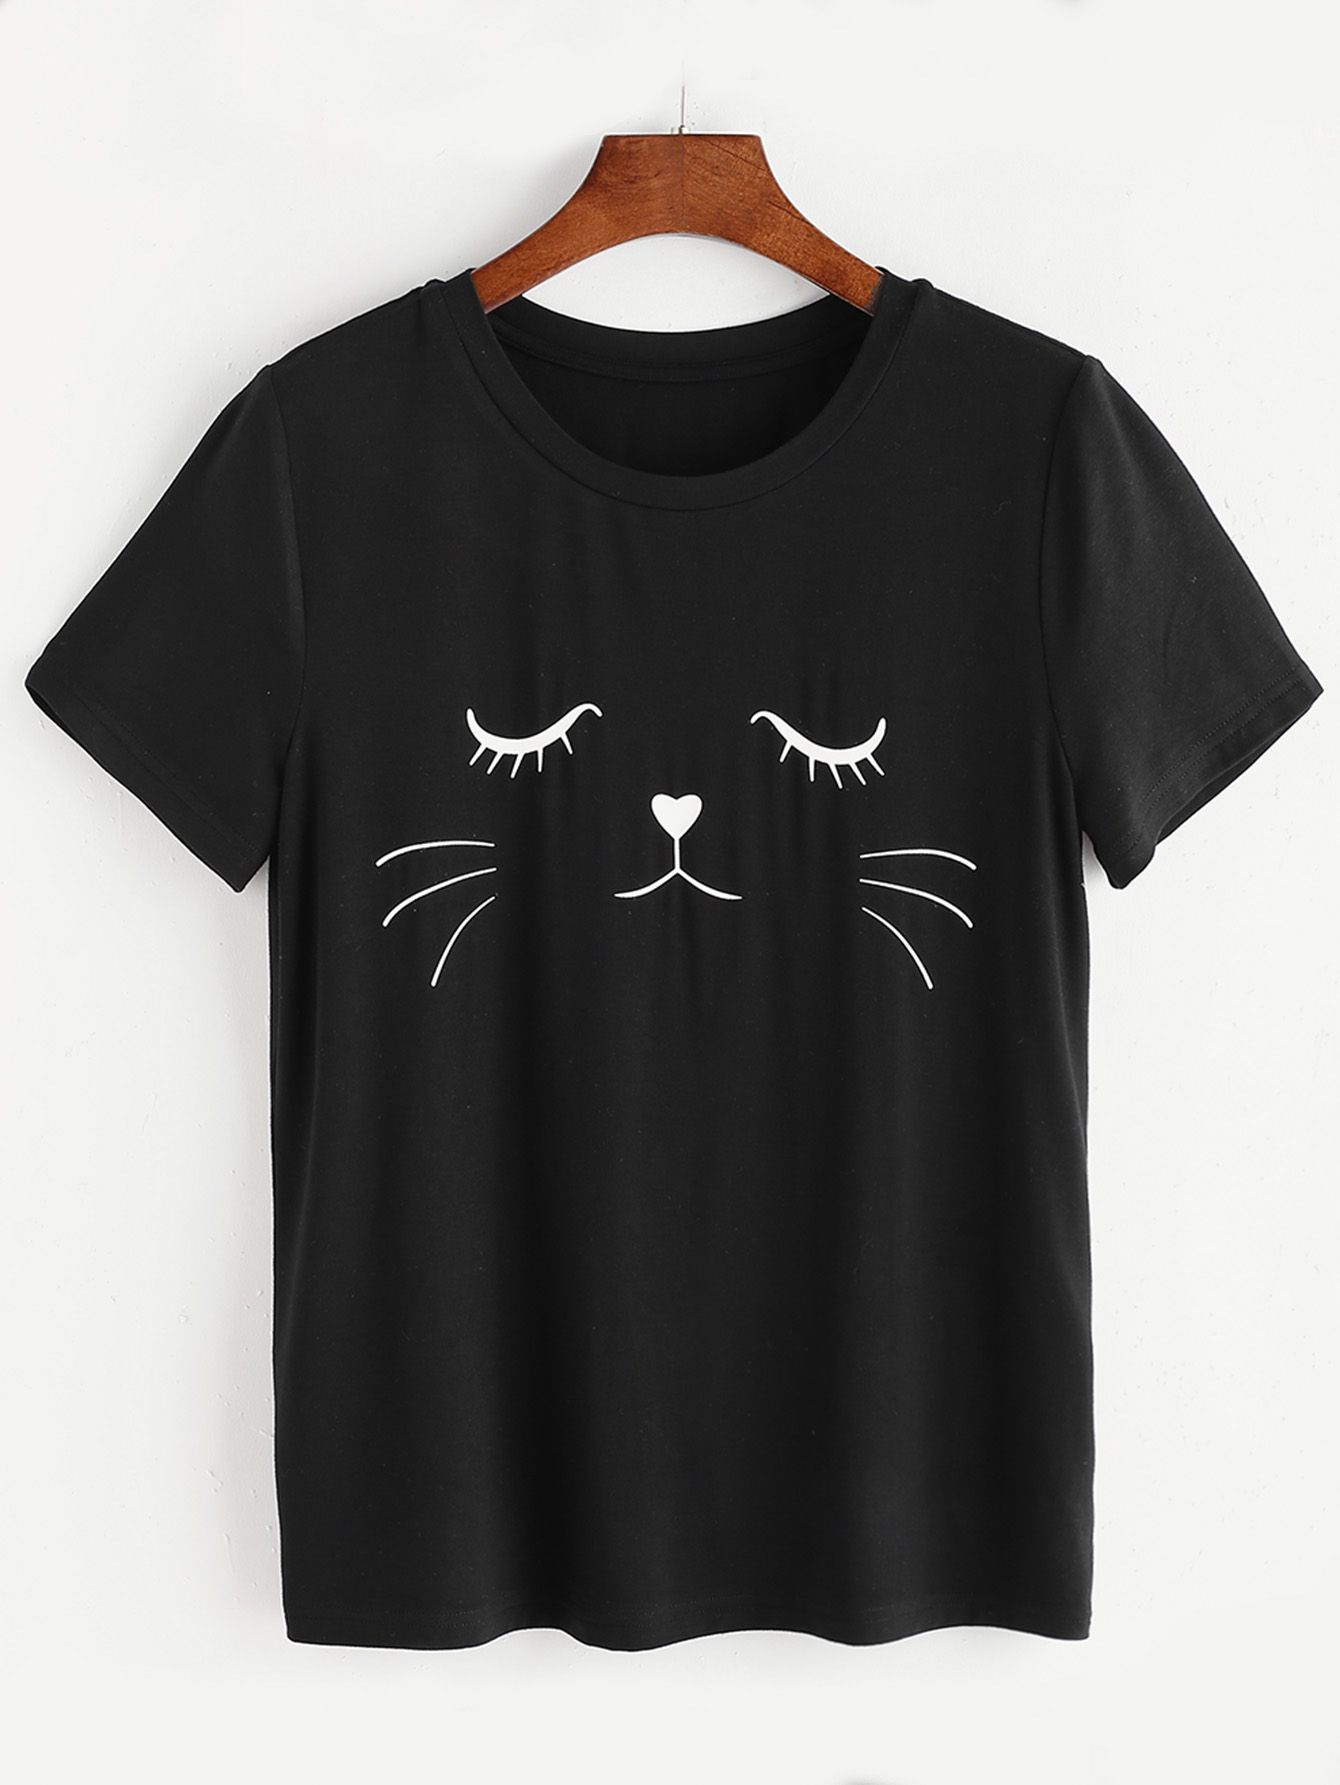 46f67c27145 Shop Black Cat Print Short Sleeve T-shirt online. SheIn offers Black Cat  Print Short Sleeve T-shirt   more to fit your fashionable needs.